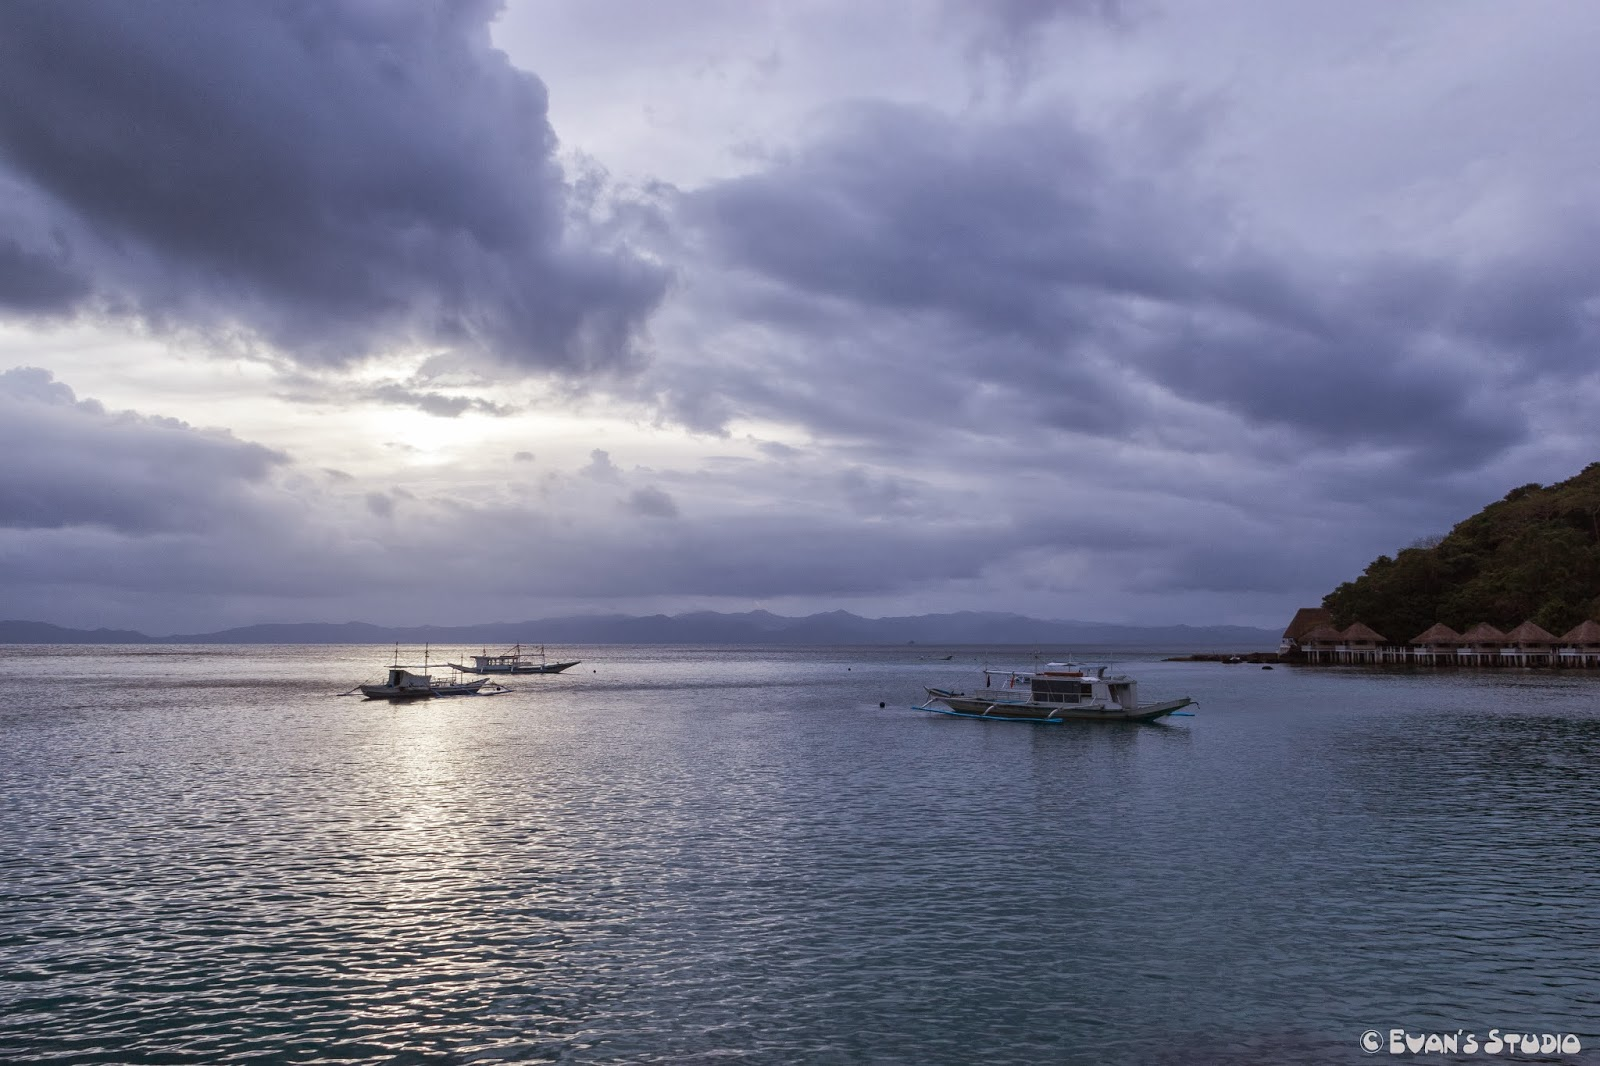 Three ships sit at the outskirts of Apulit Island Resort during dusk.